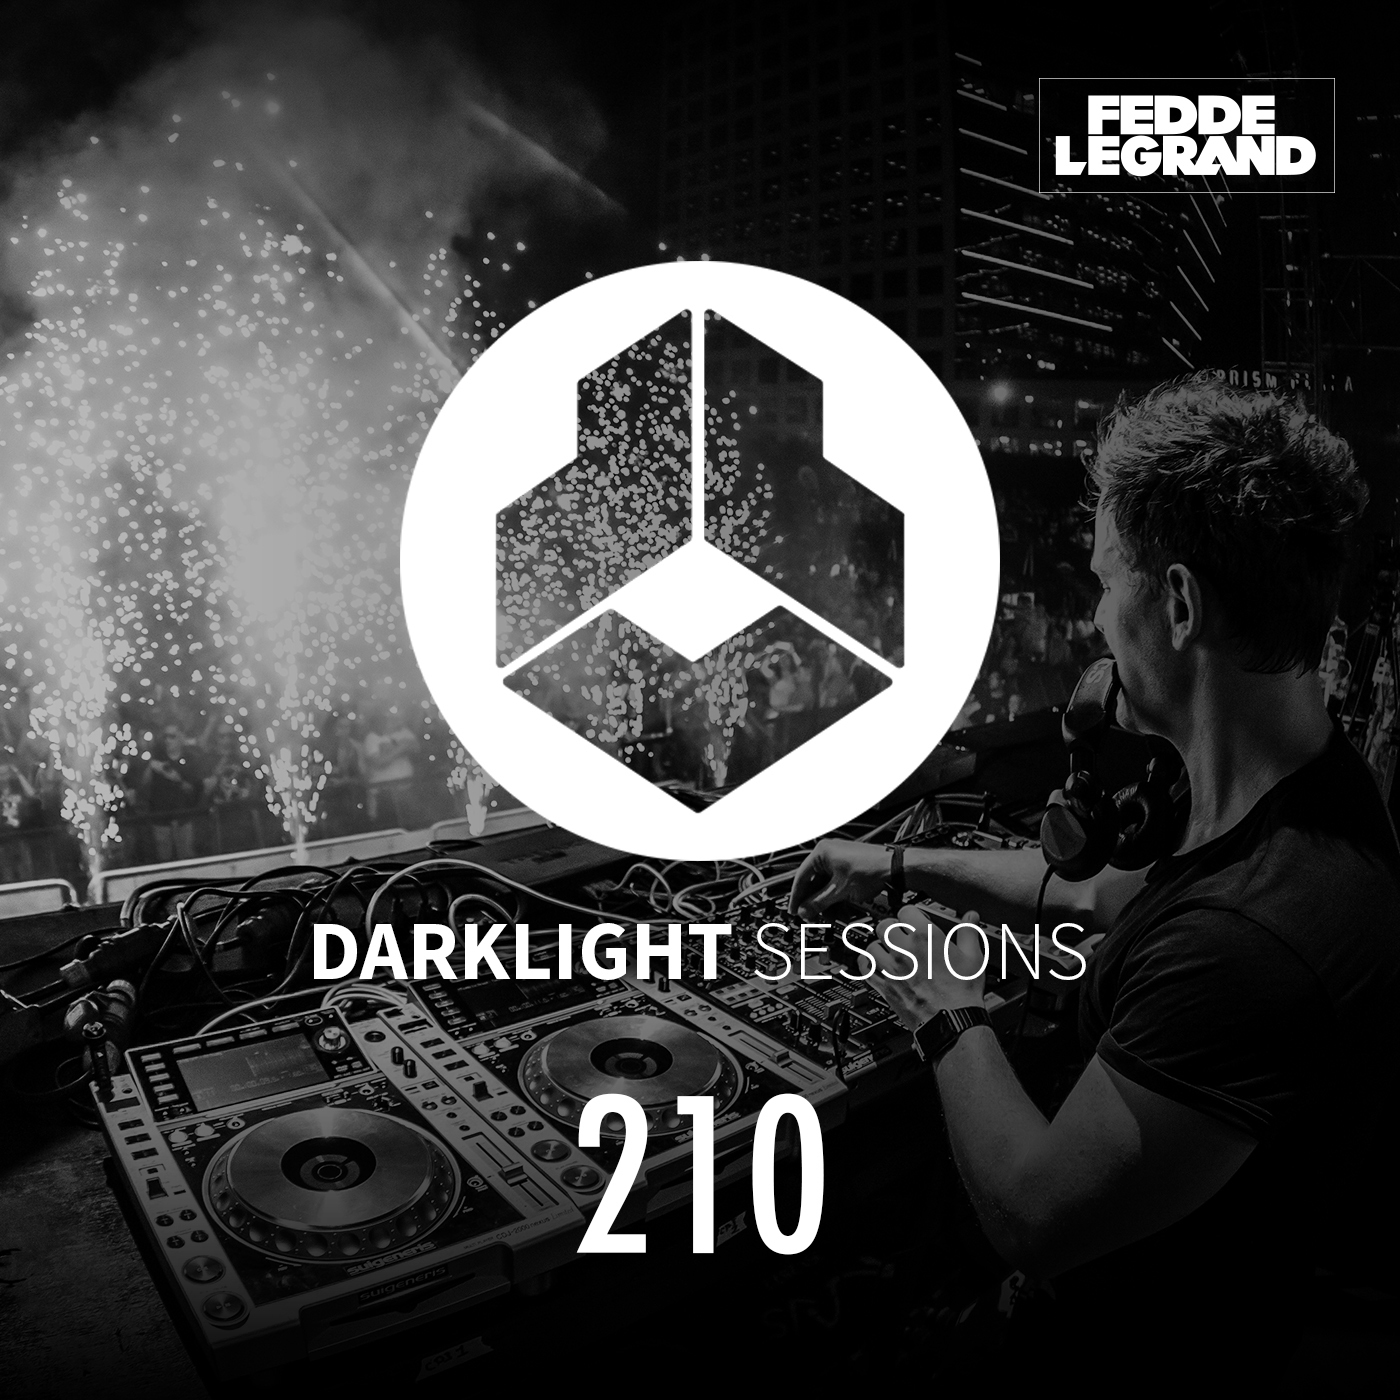 Darklight Sessions 210